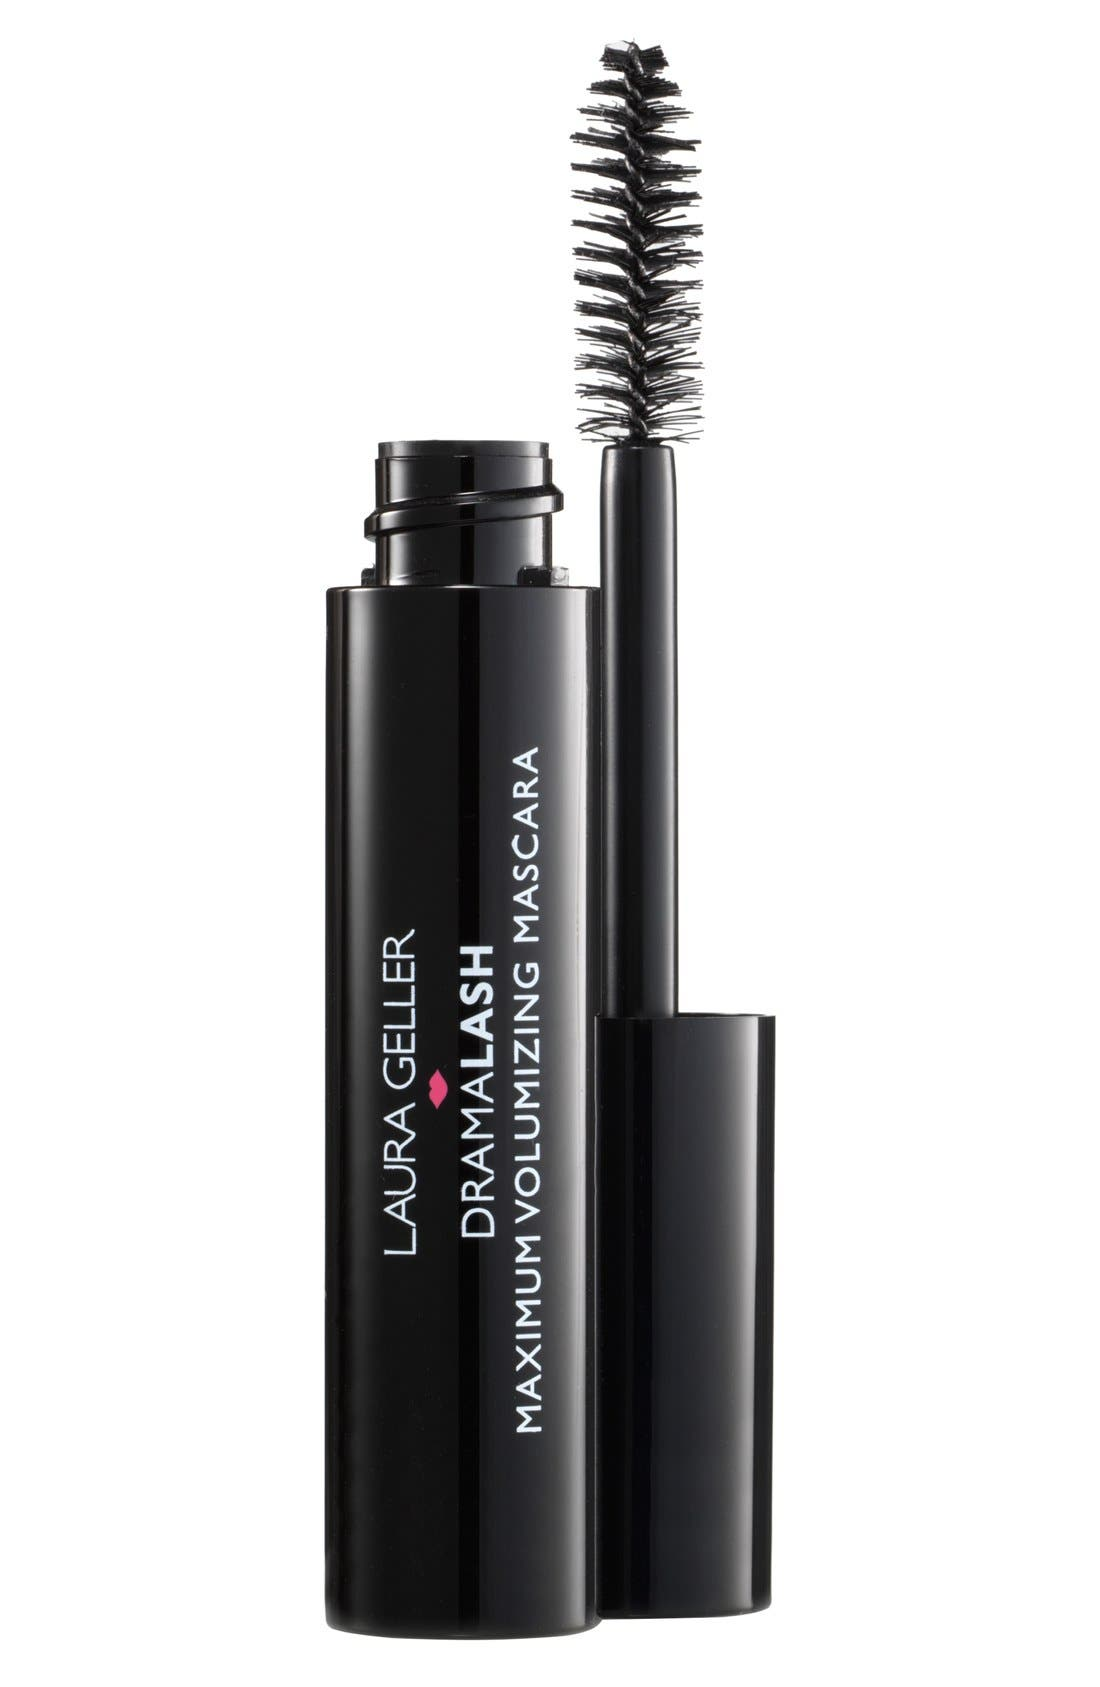 DramaLASH Maximum Volumizing Mascara,                         Main,                         color, BLACK